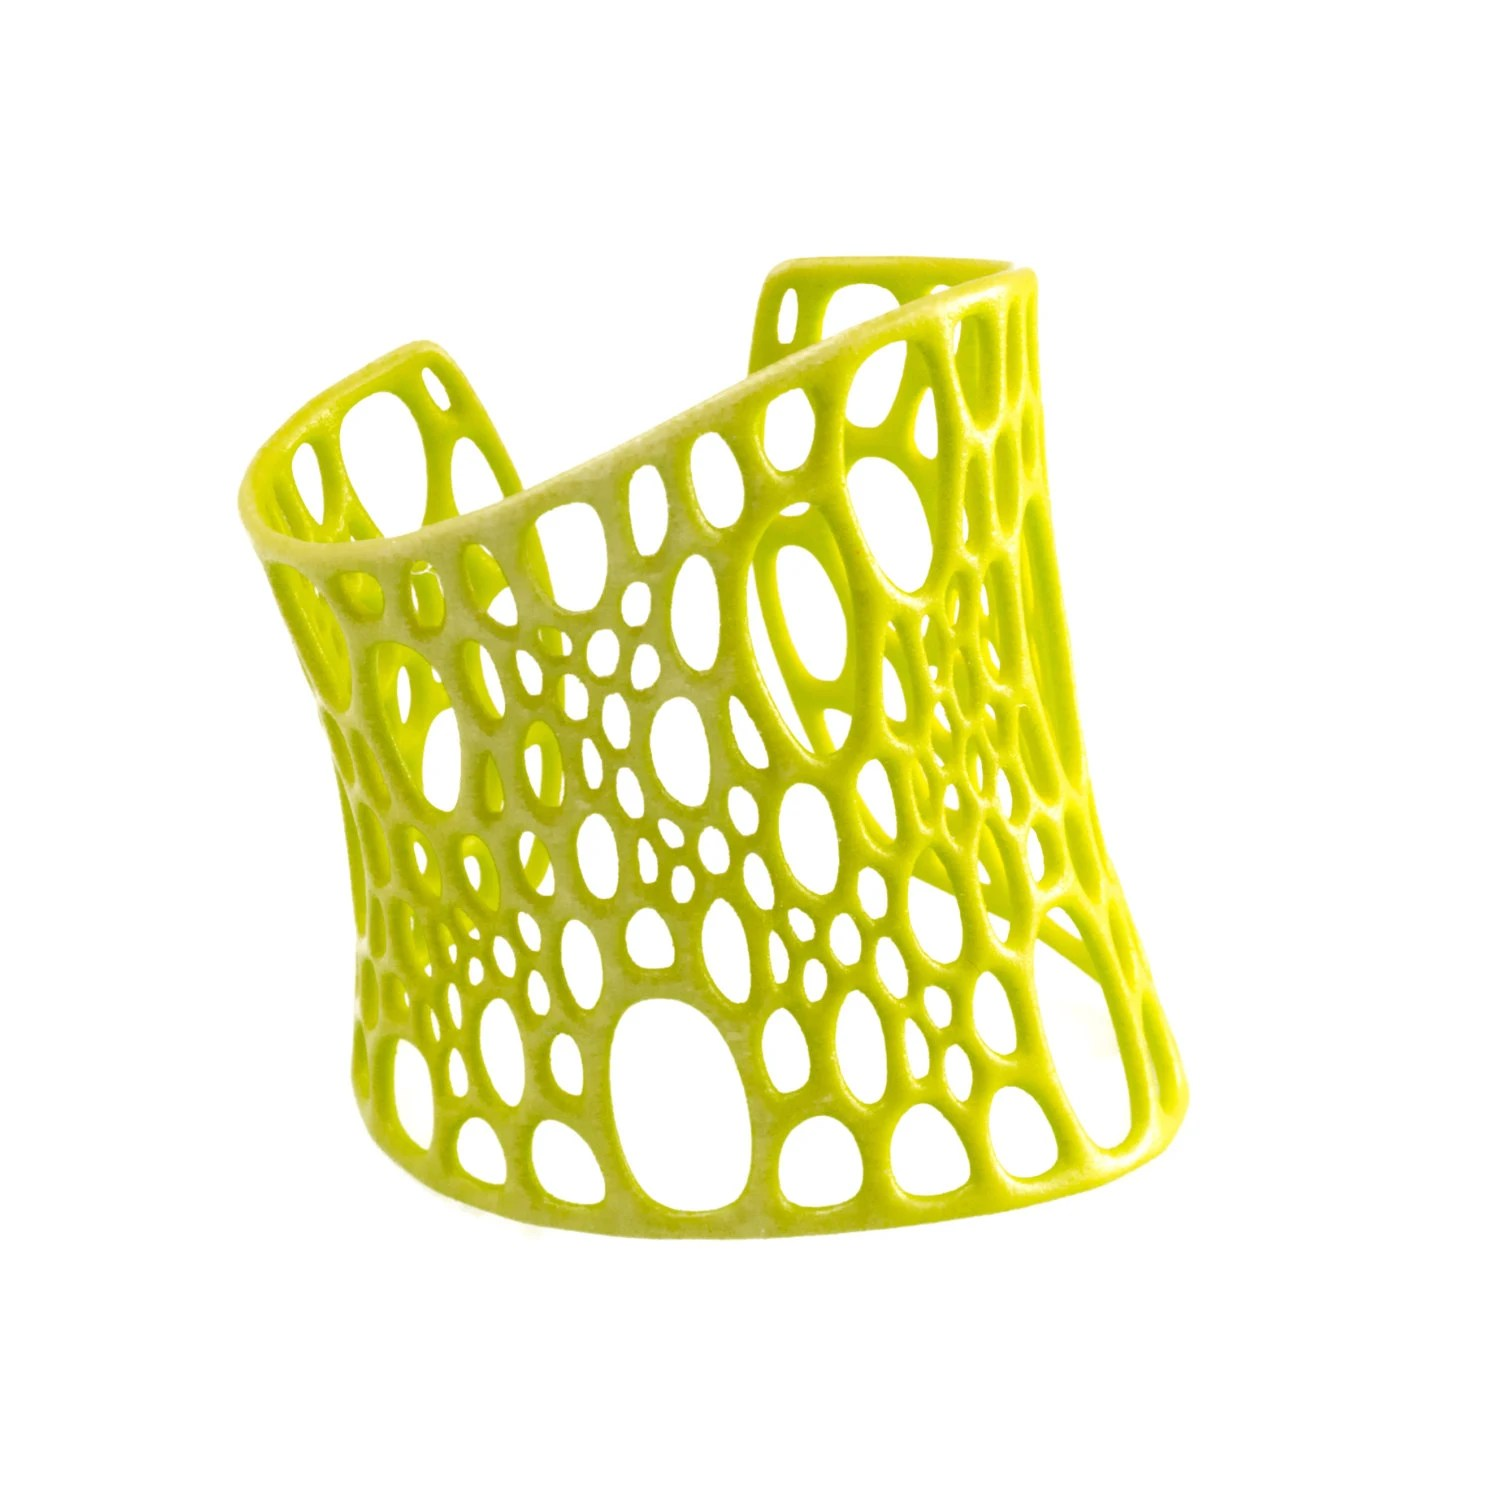 SALE 25% OFF Subdivision Cuff - neon yellow - nervoussystem